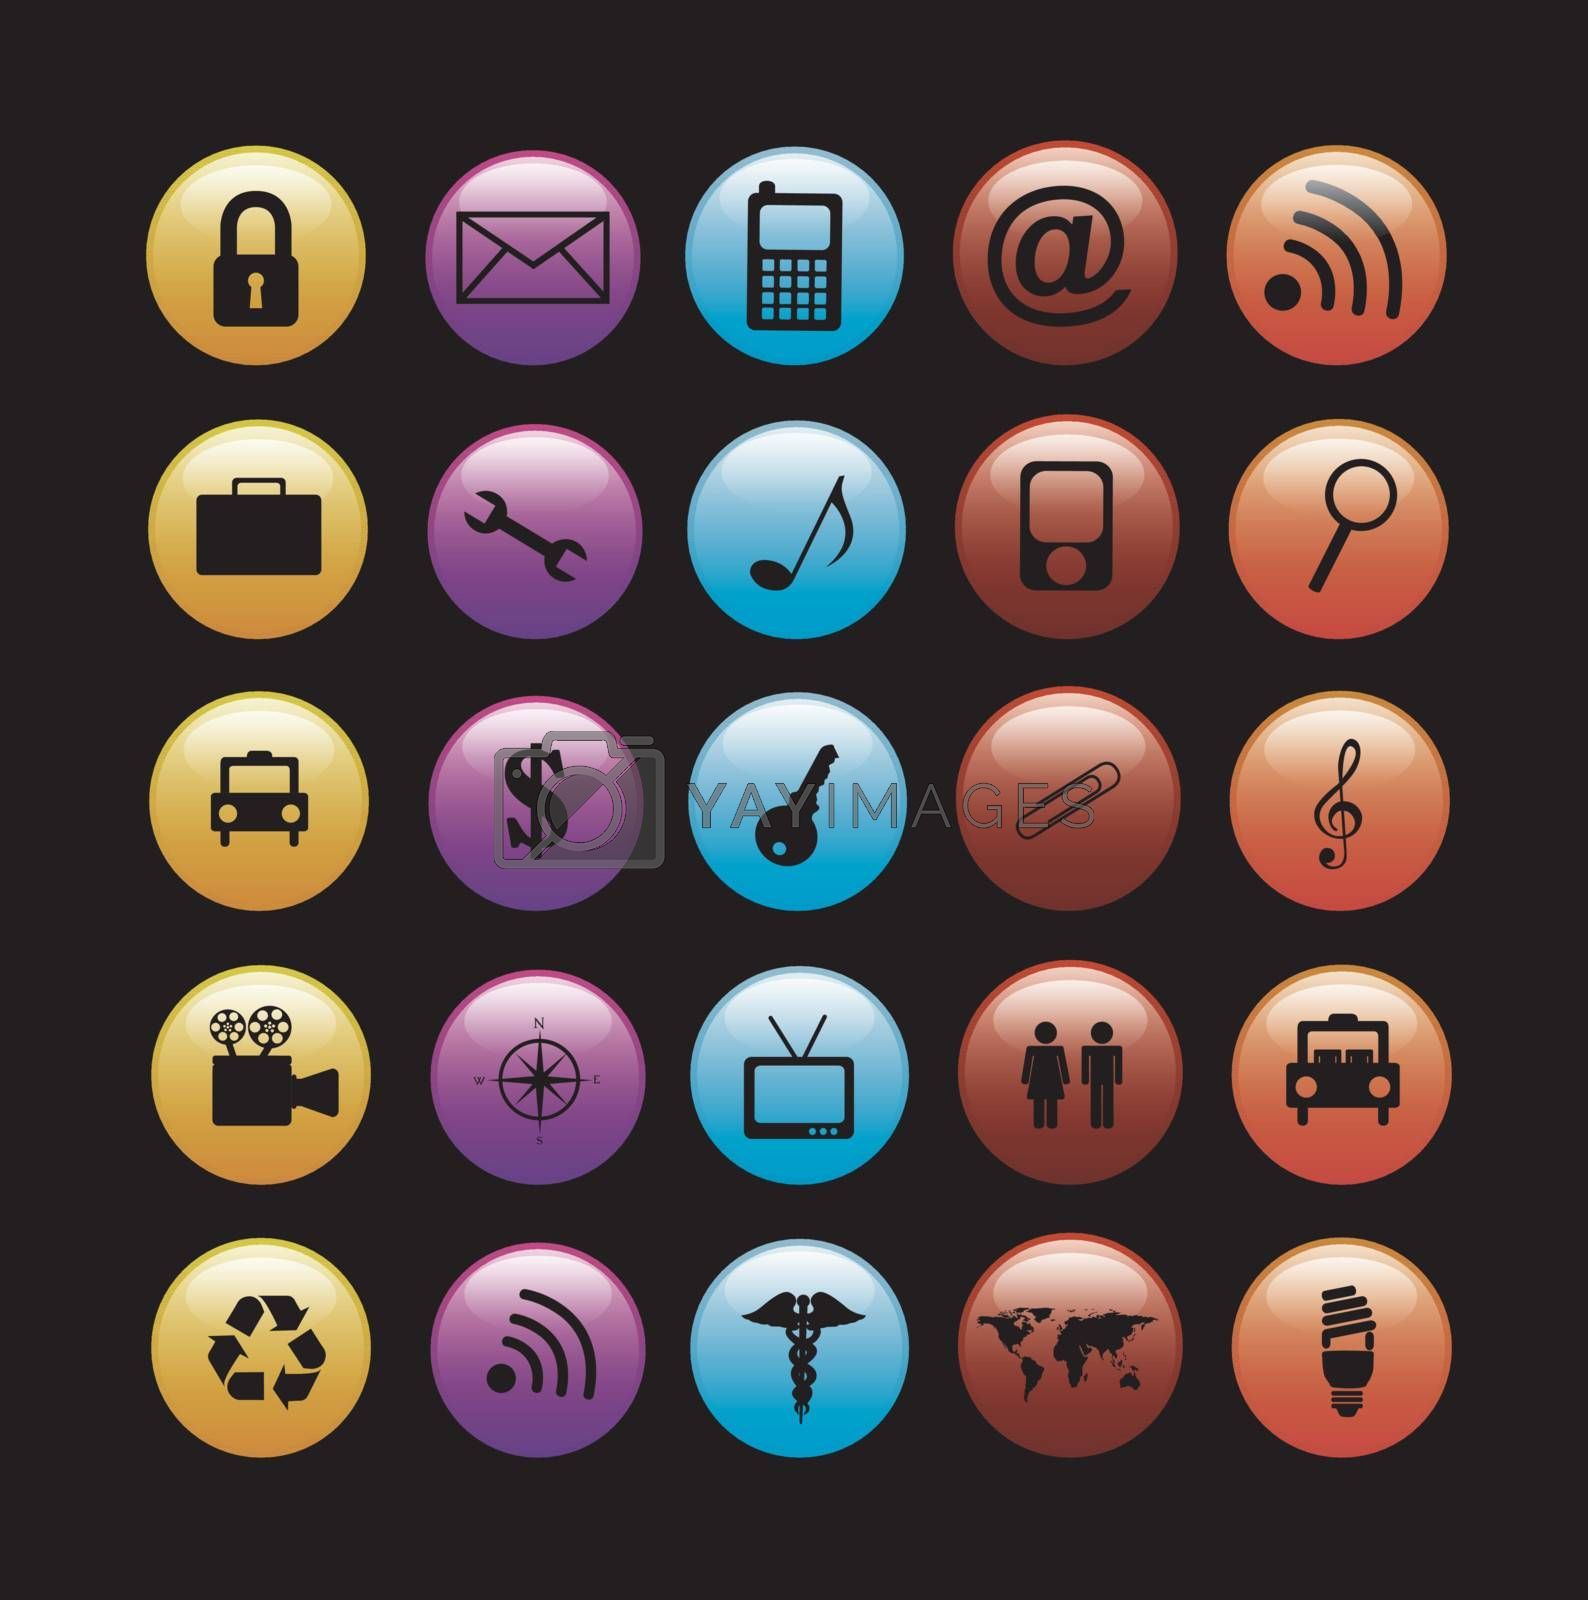 Communications icons over black background vector illustration